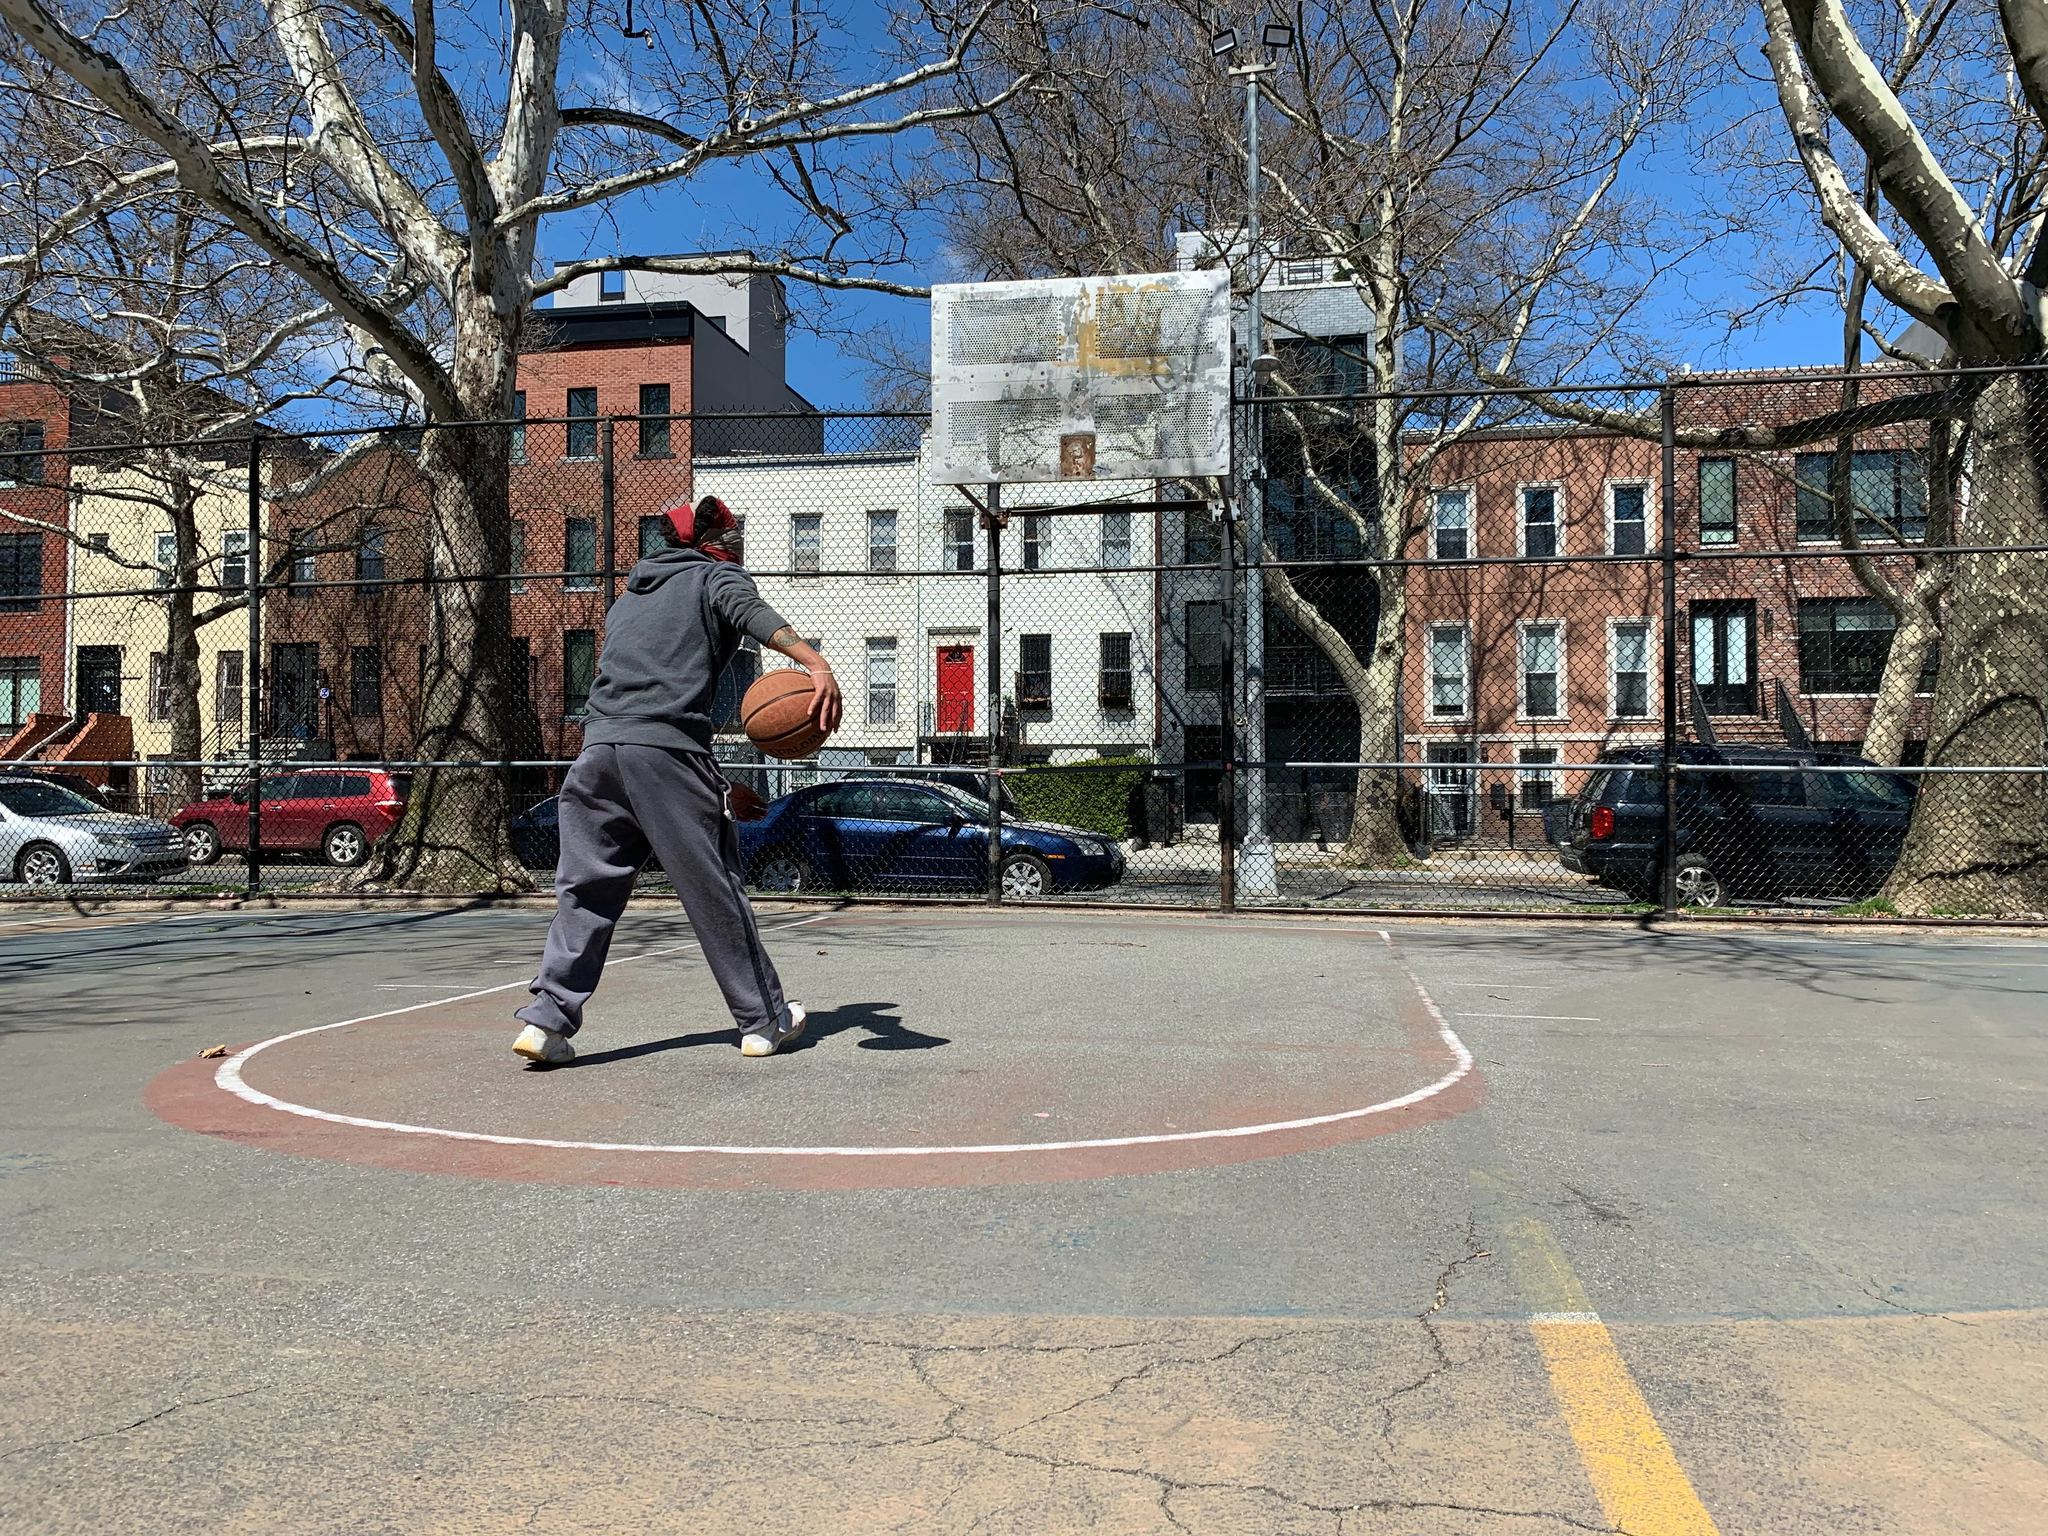 From Bed-Stuy to Harlem, NYC's famous playground basketball courts closed due to coronavirus pandemic